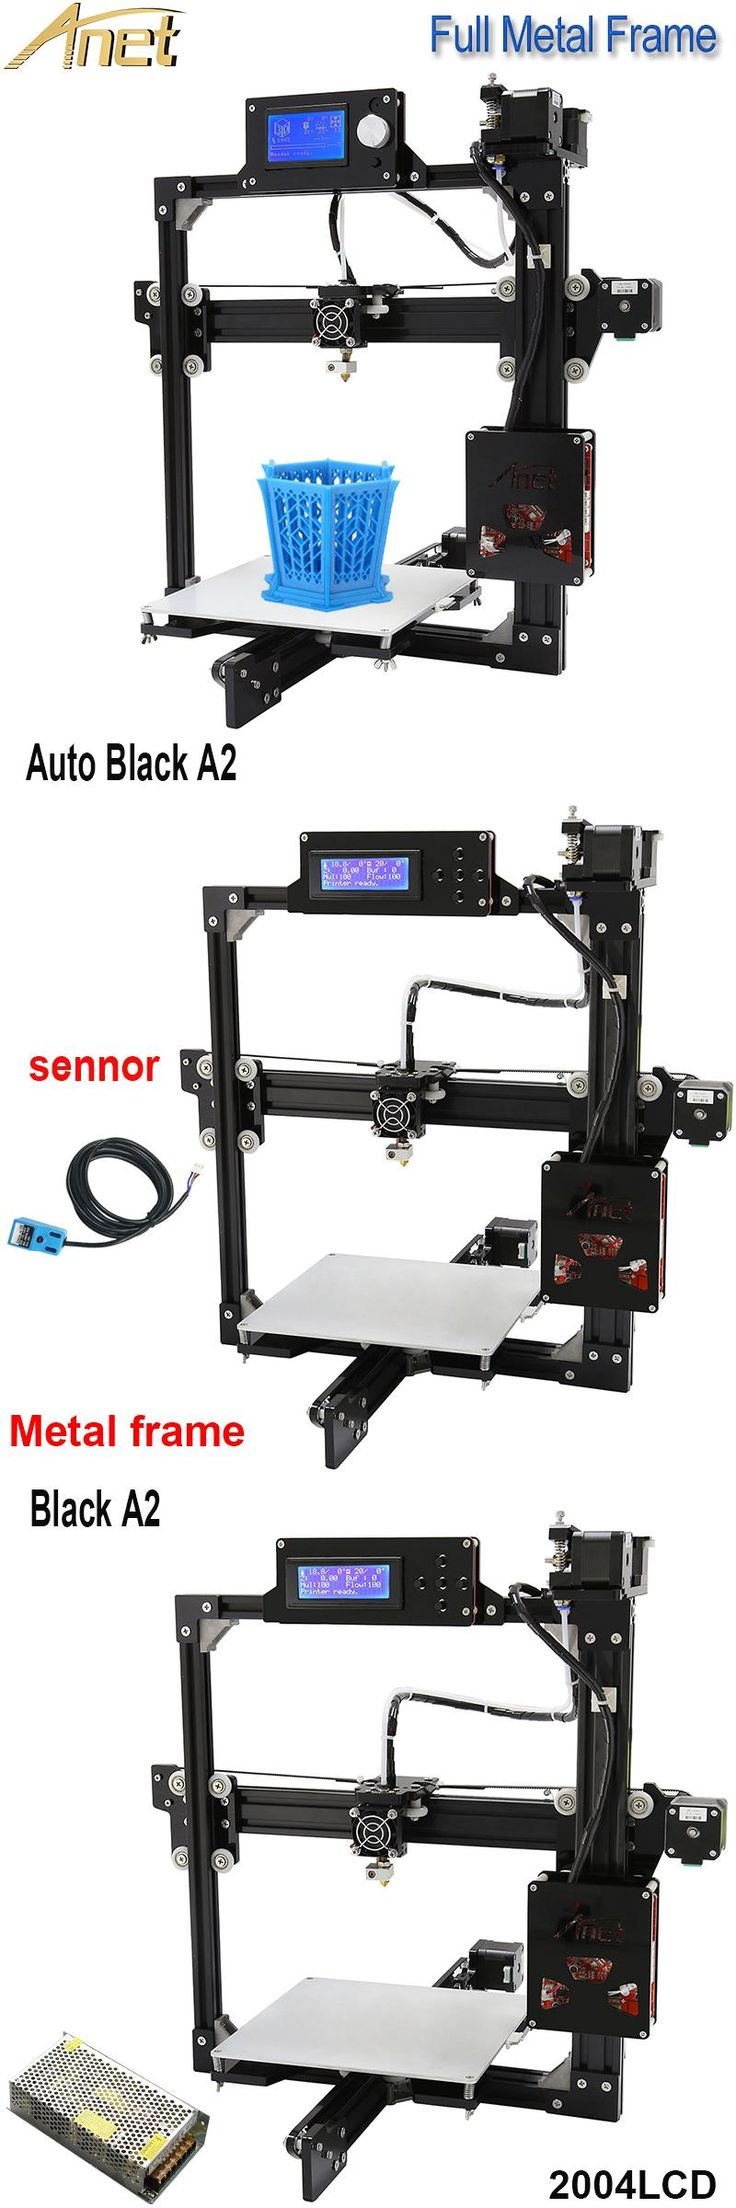 [Visit to Buy] Anet A2 impresora 3d Auto Leveling Optional Full Metal Frame Anet A2 3D Printer Kit DIY Easy Assemble with Free 10m Filaments  #Advertisement